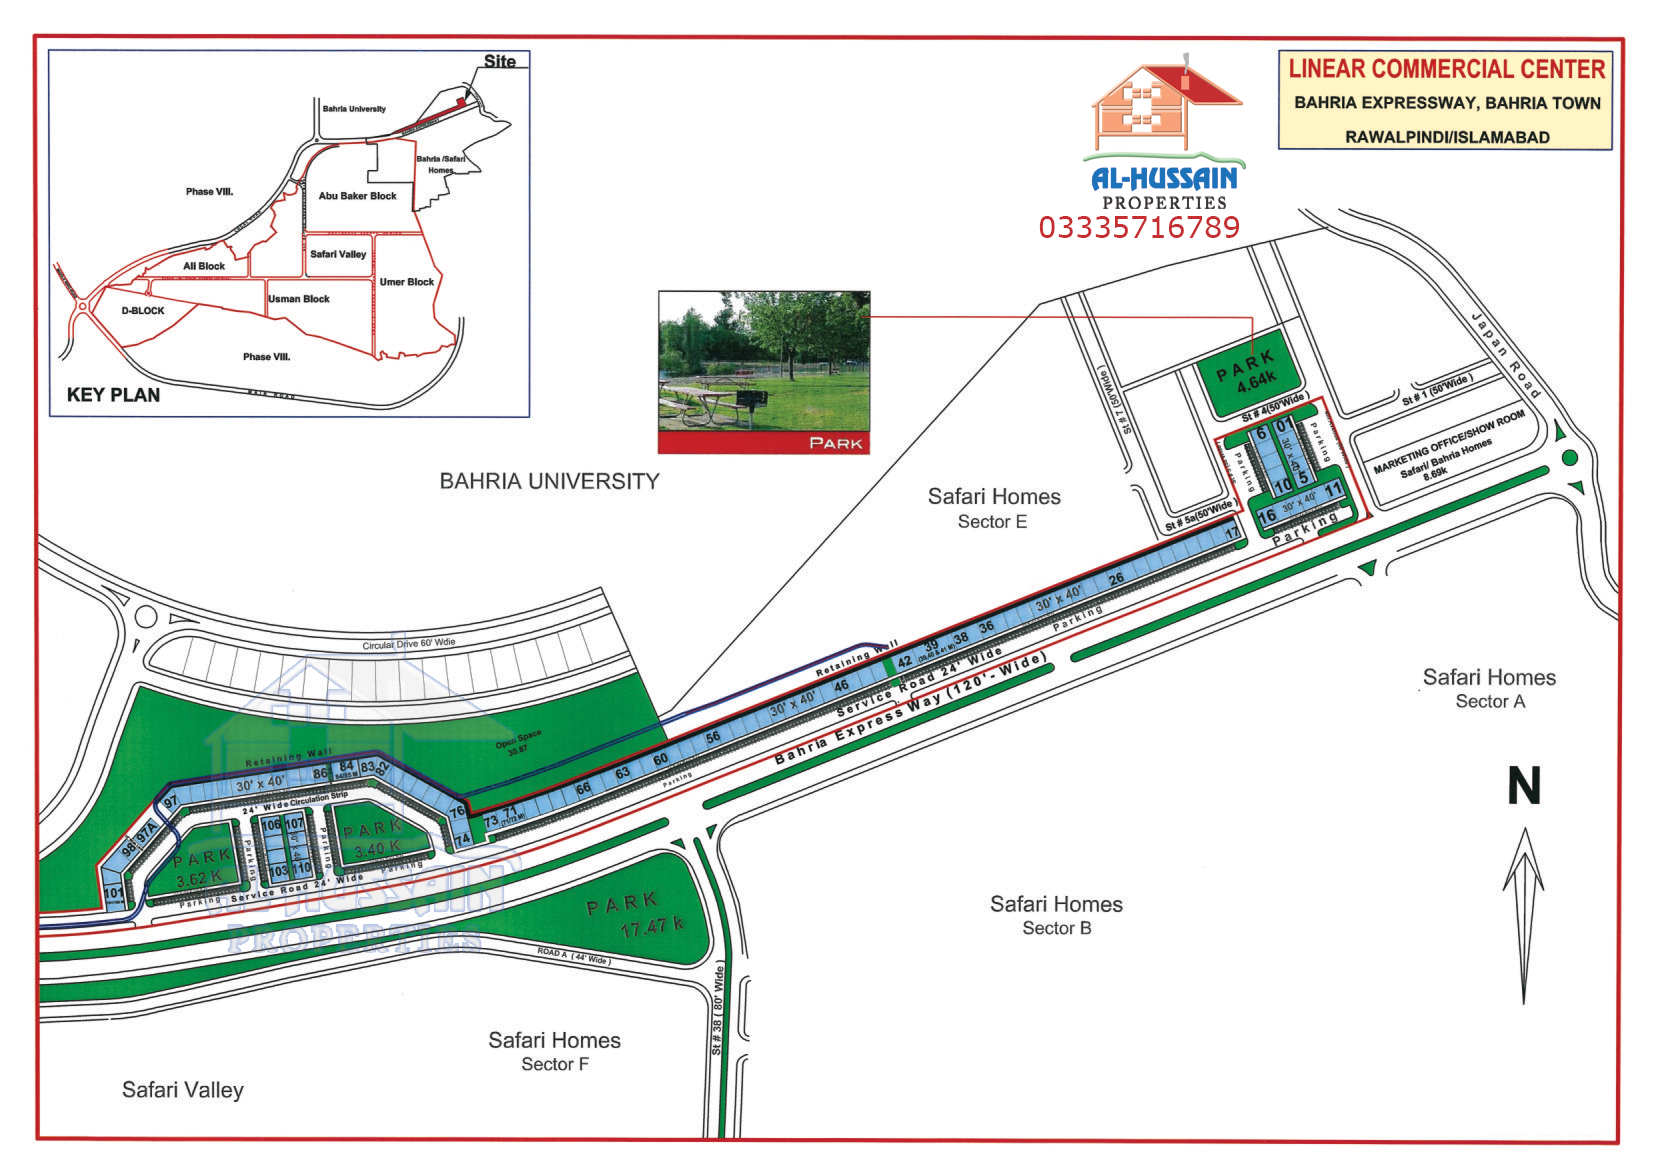 Liner Commercial Center Bahria Expressway, Bahria Town Rawalpindi